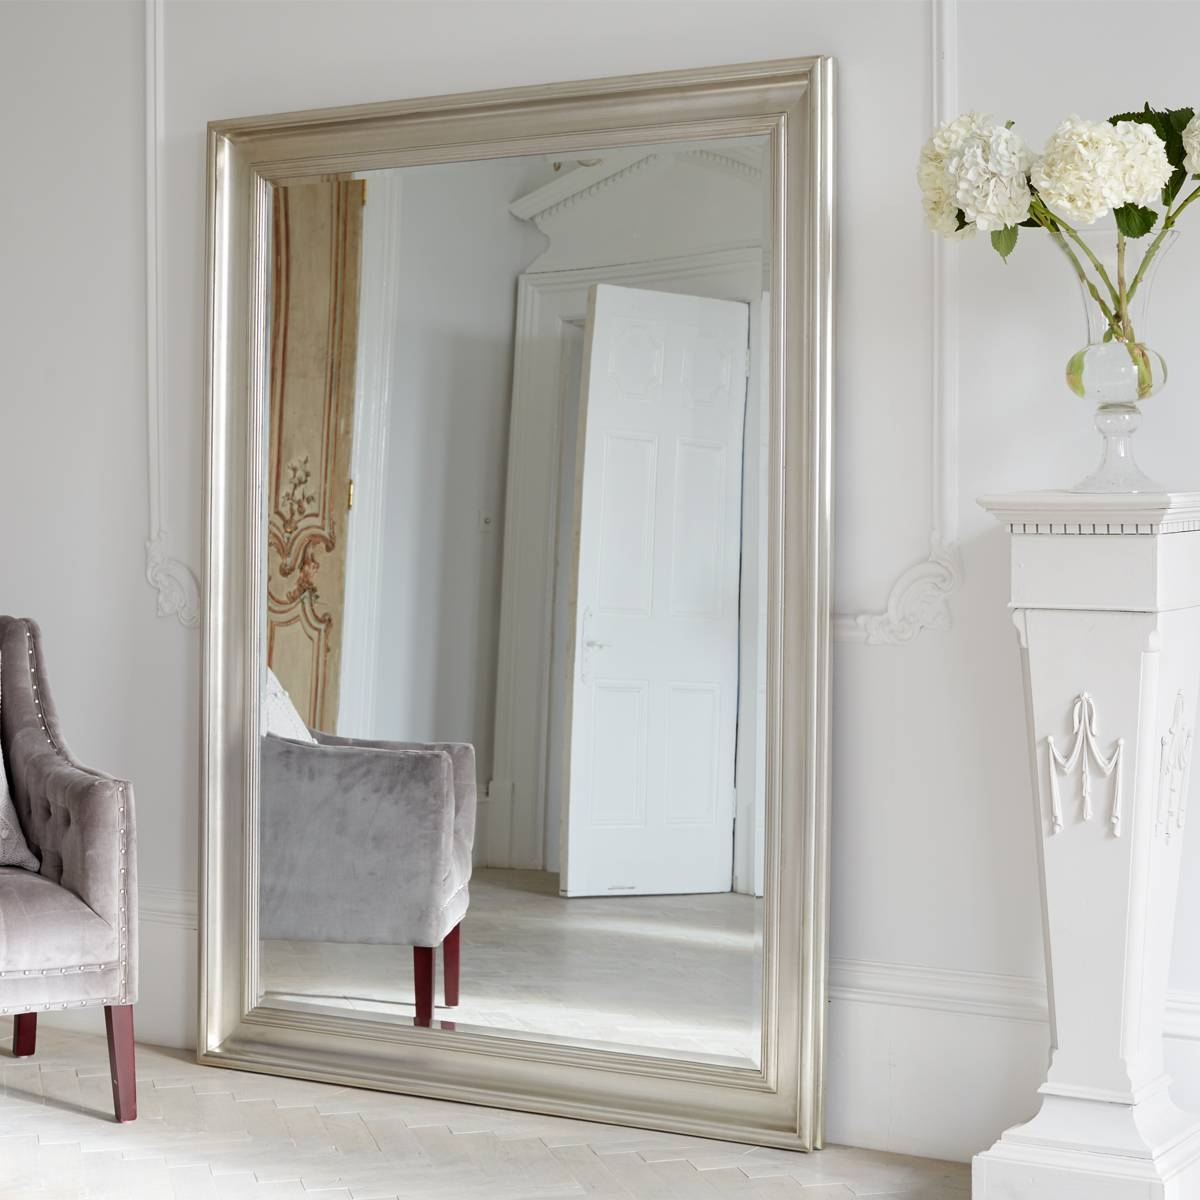 Wall Mirrors - Full-Length Mirrors - Oversized Mirrors. Vintage within Vintage Full Length Mirrors (Image 24 of 25)